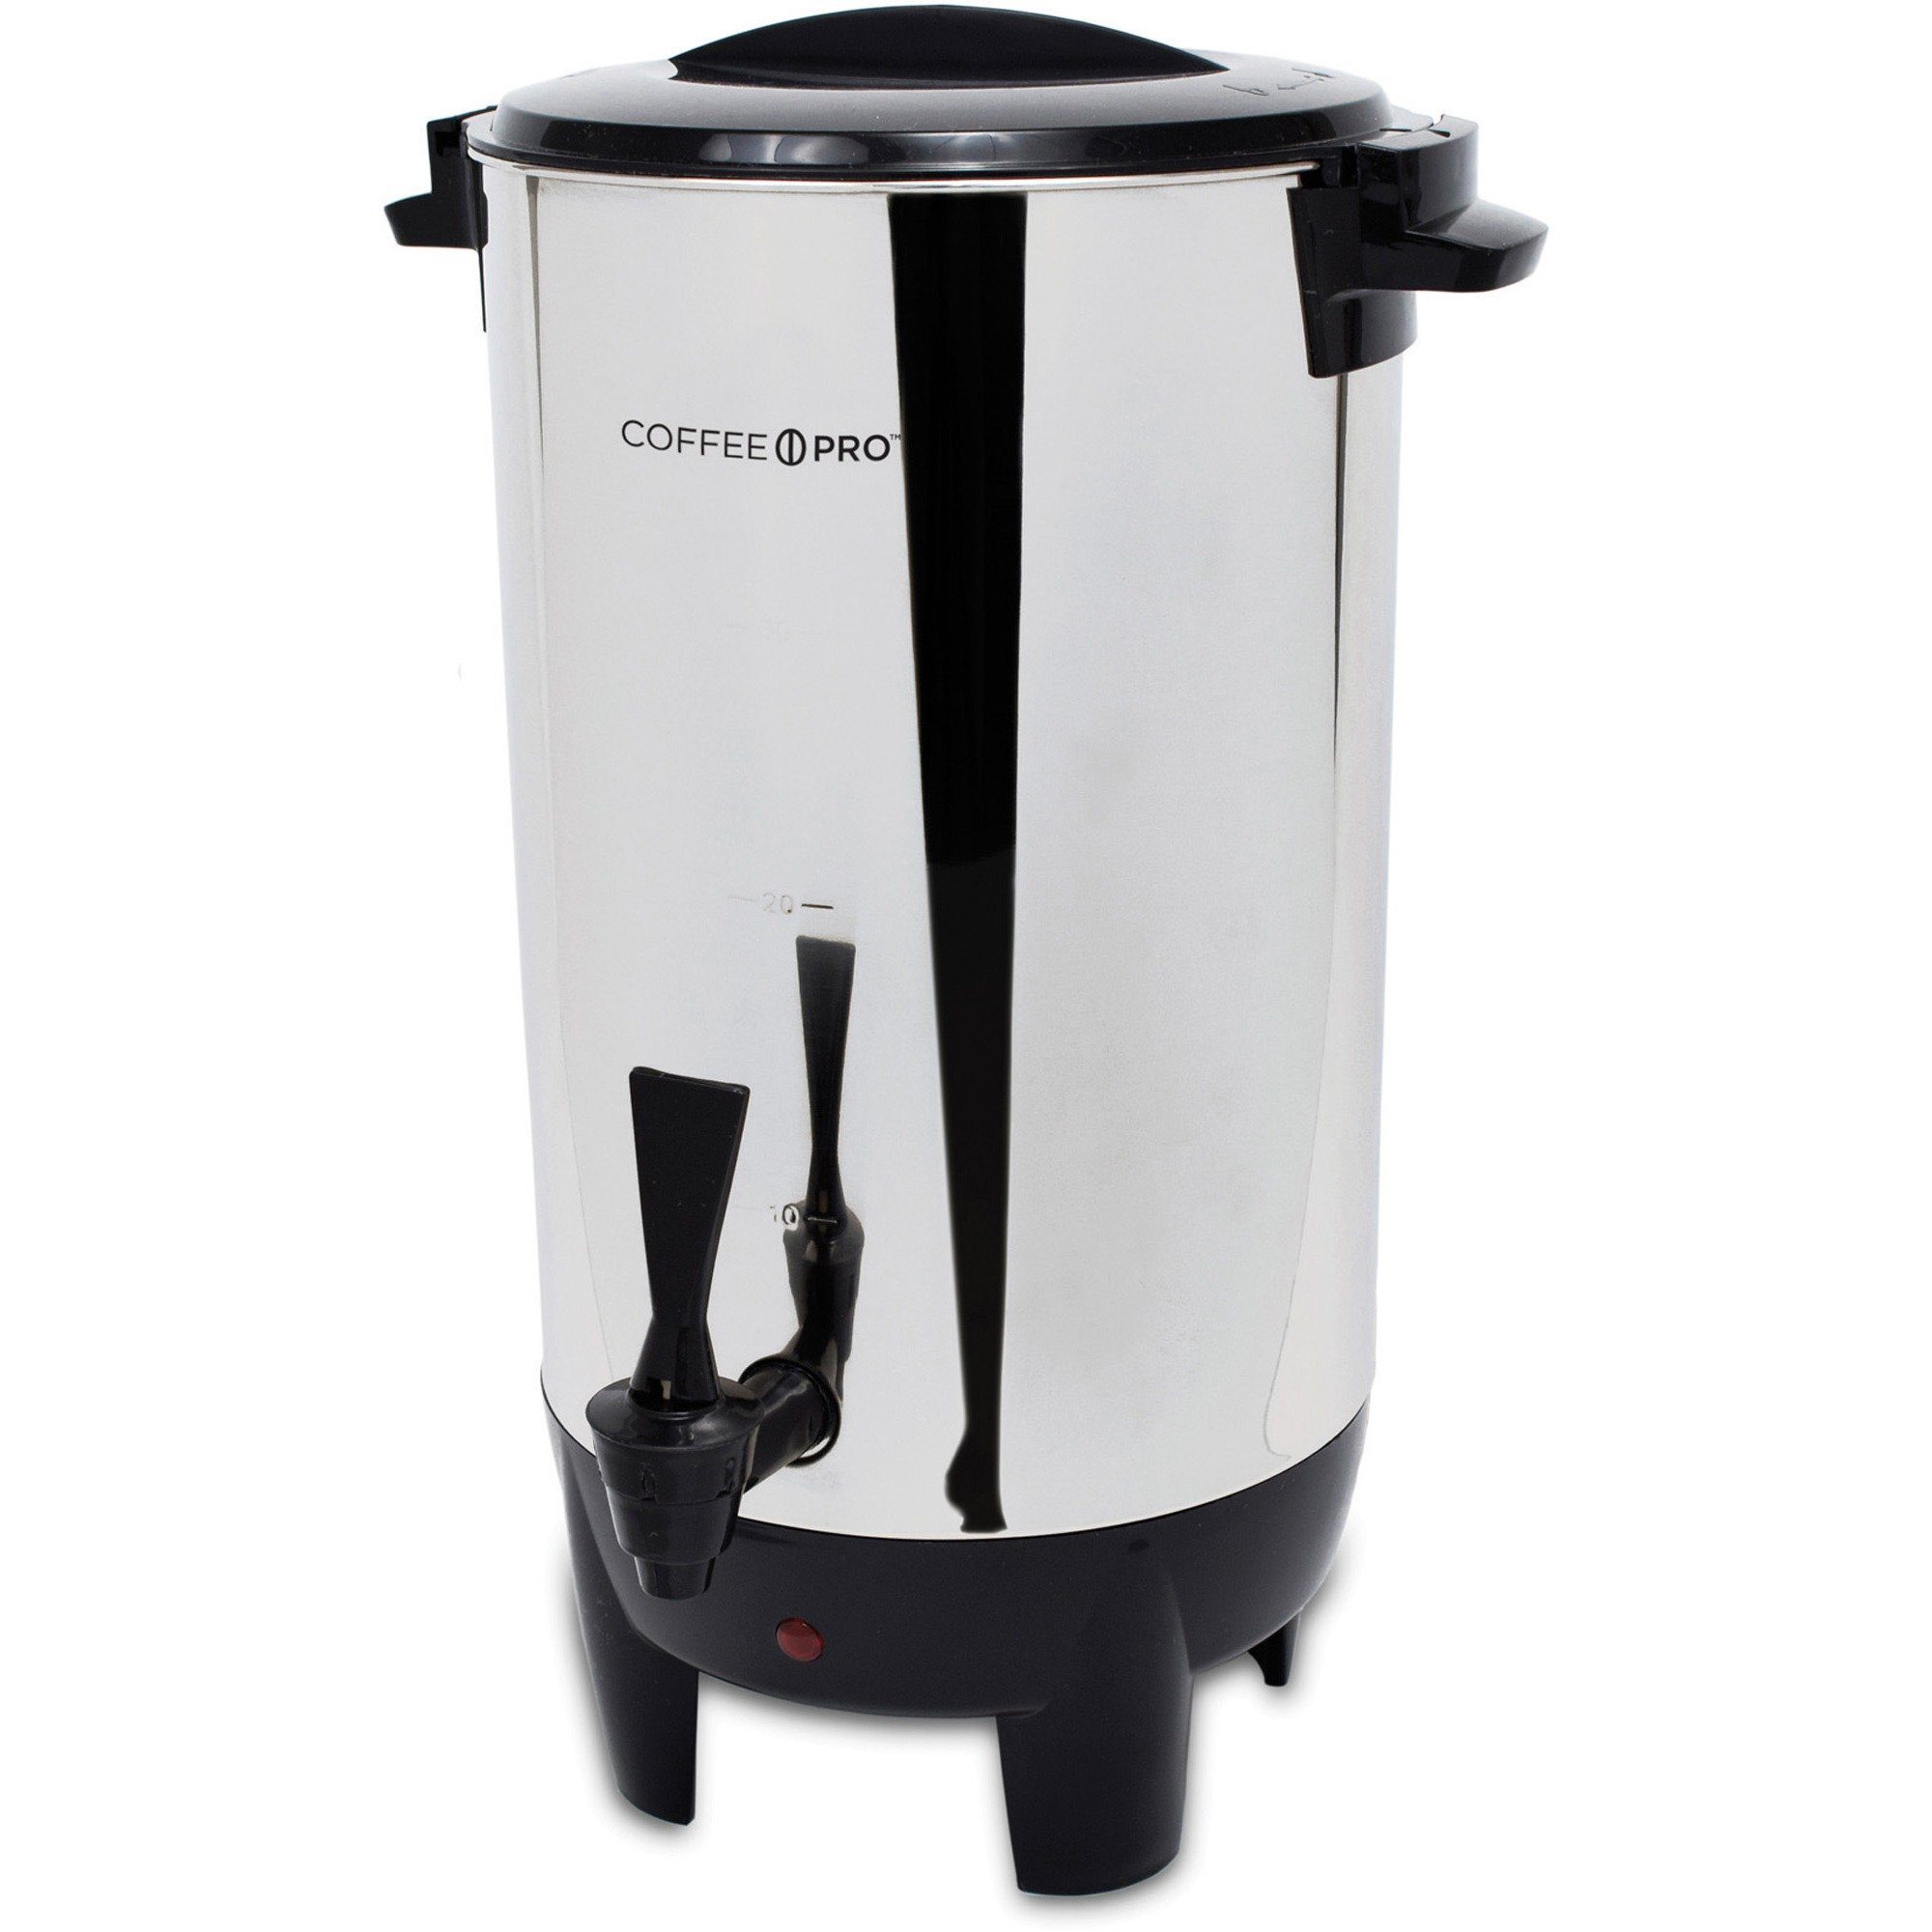 OGFCP30 - Coffee Pro 30-Cup Percolating Urn by CoffeePro